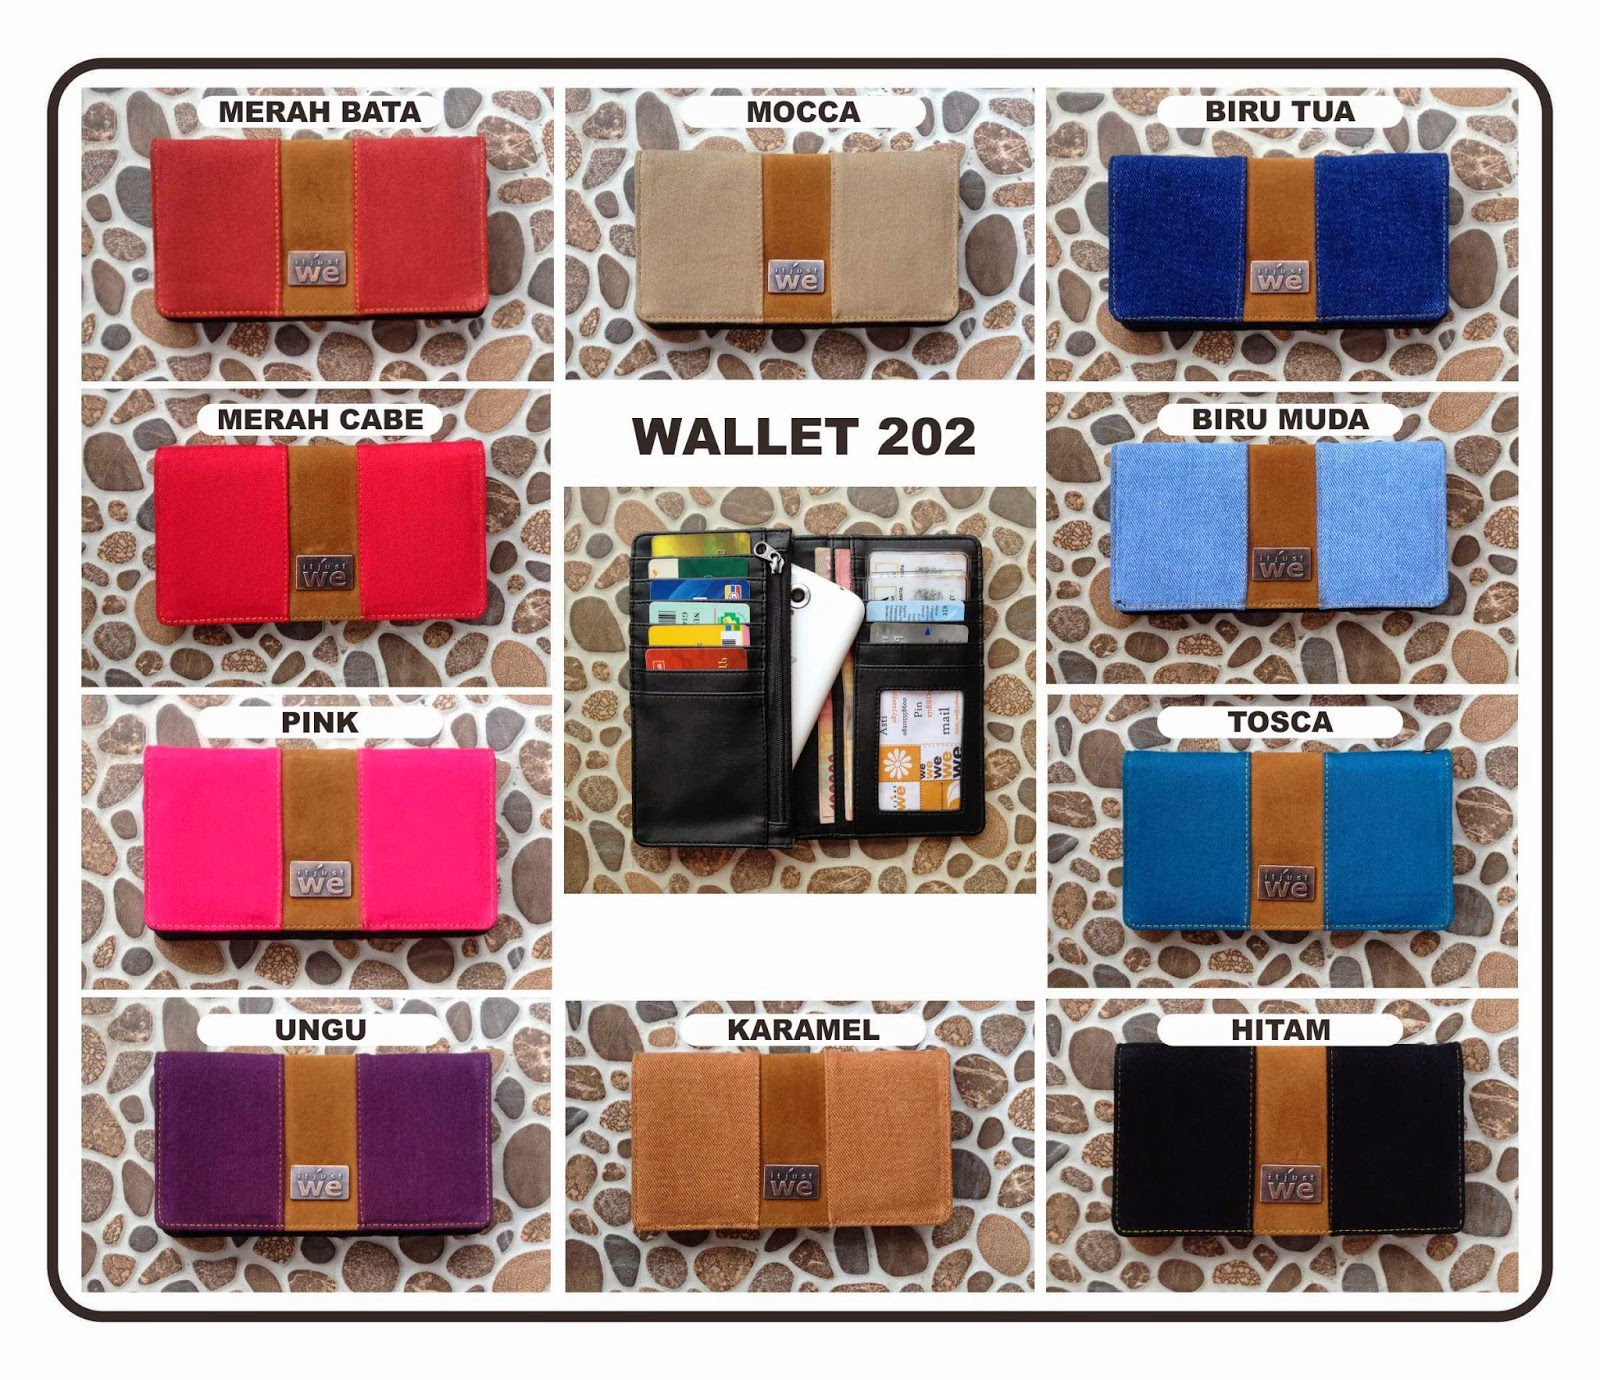 dompet jeans terbaru it just we 2015 wallet 202